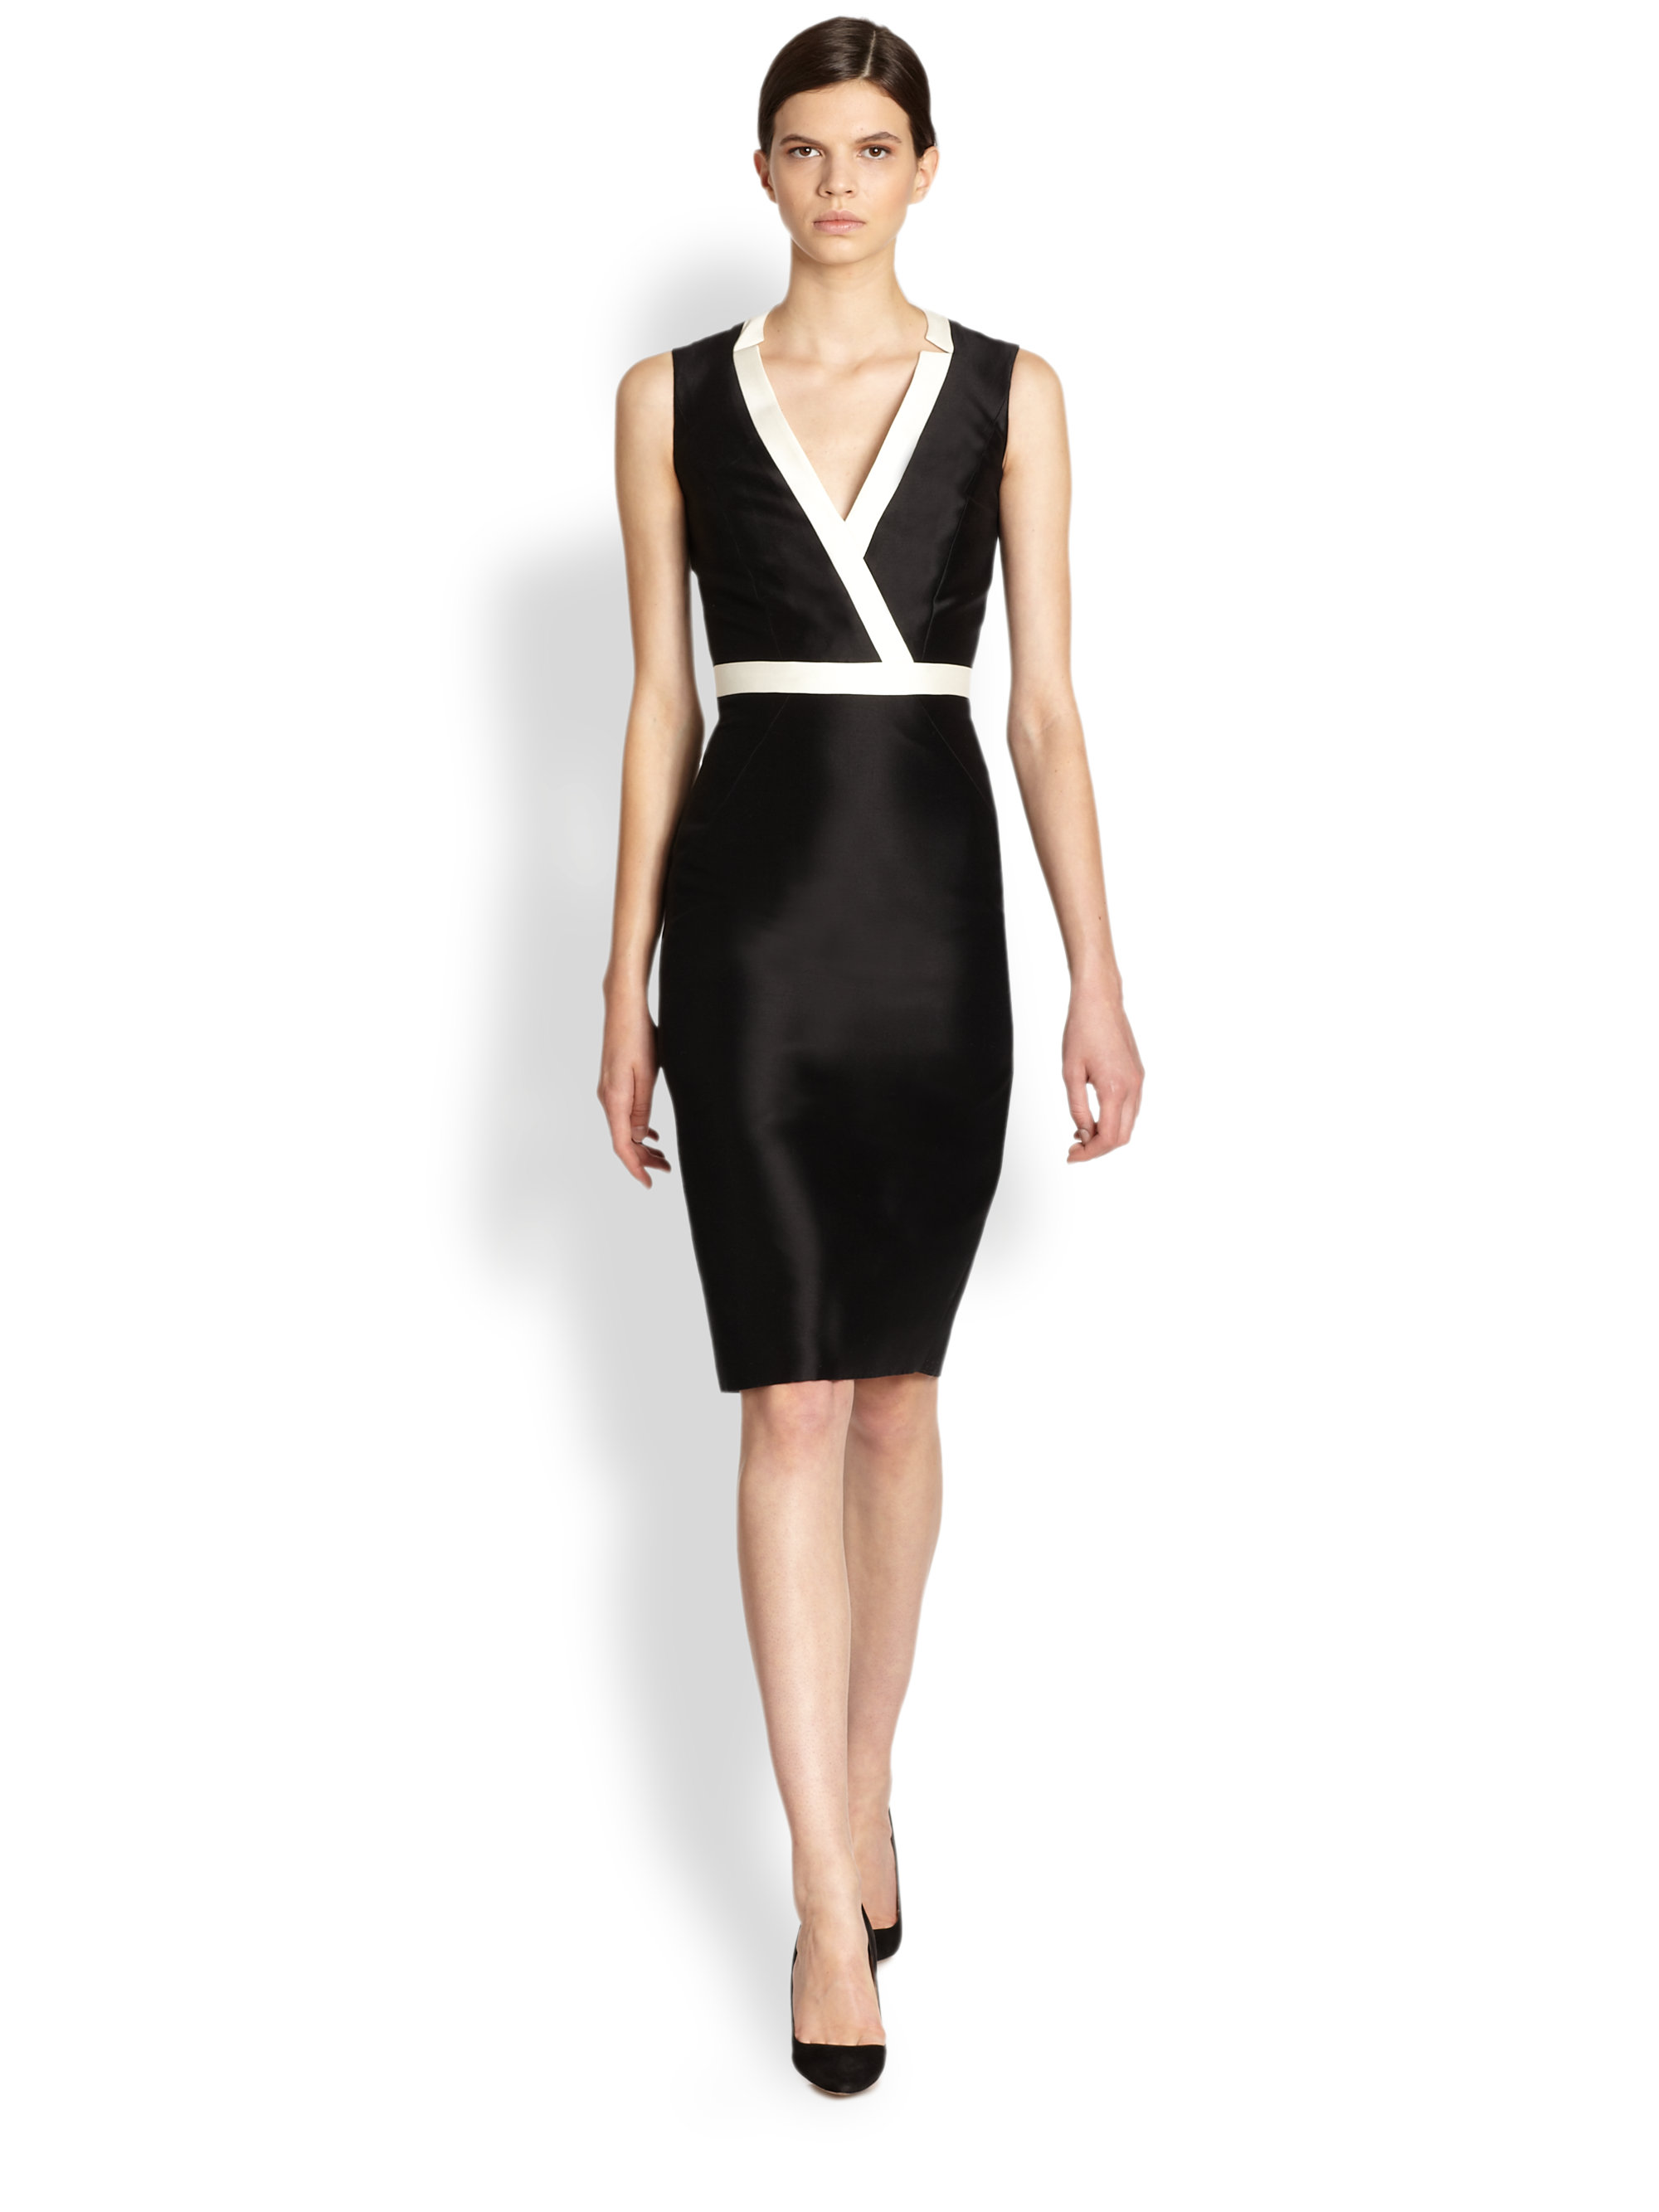 Carolina Herrera Cocktail Dresses | perlabook.com